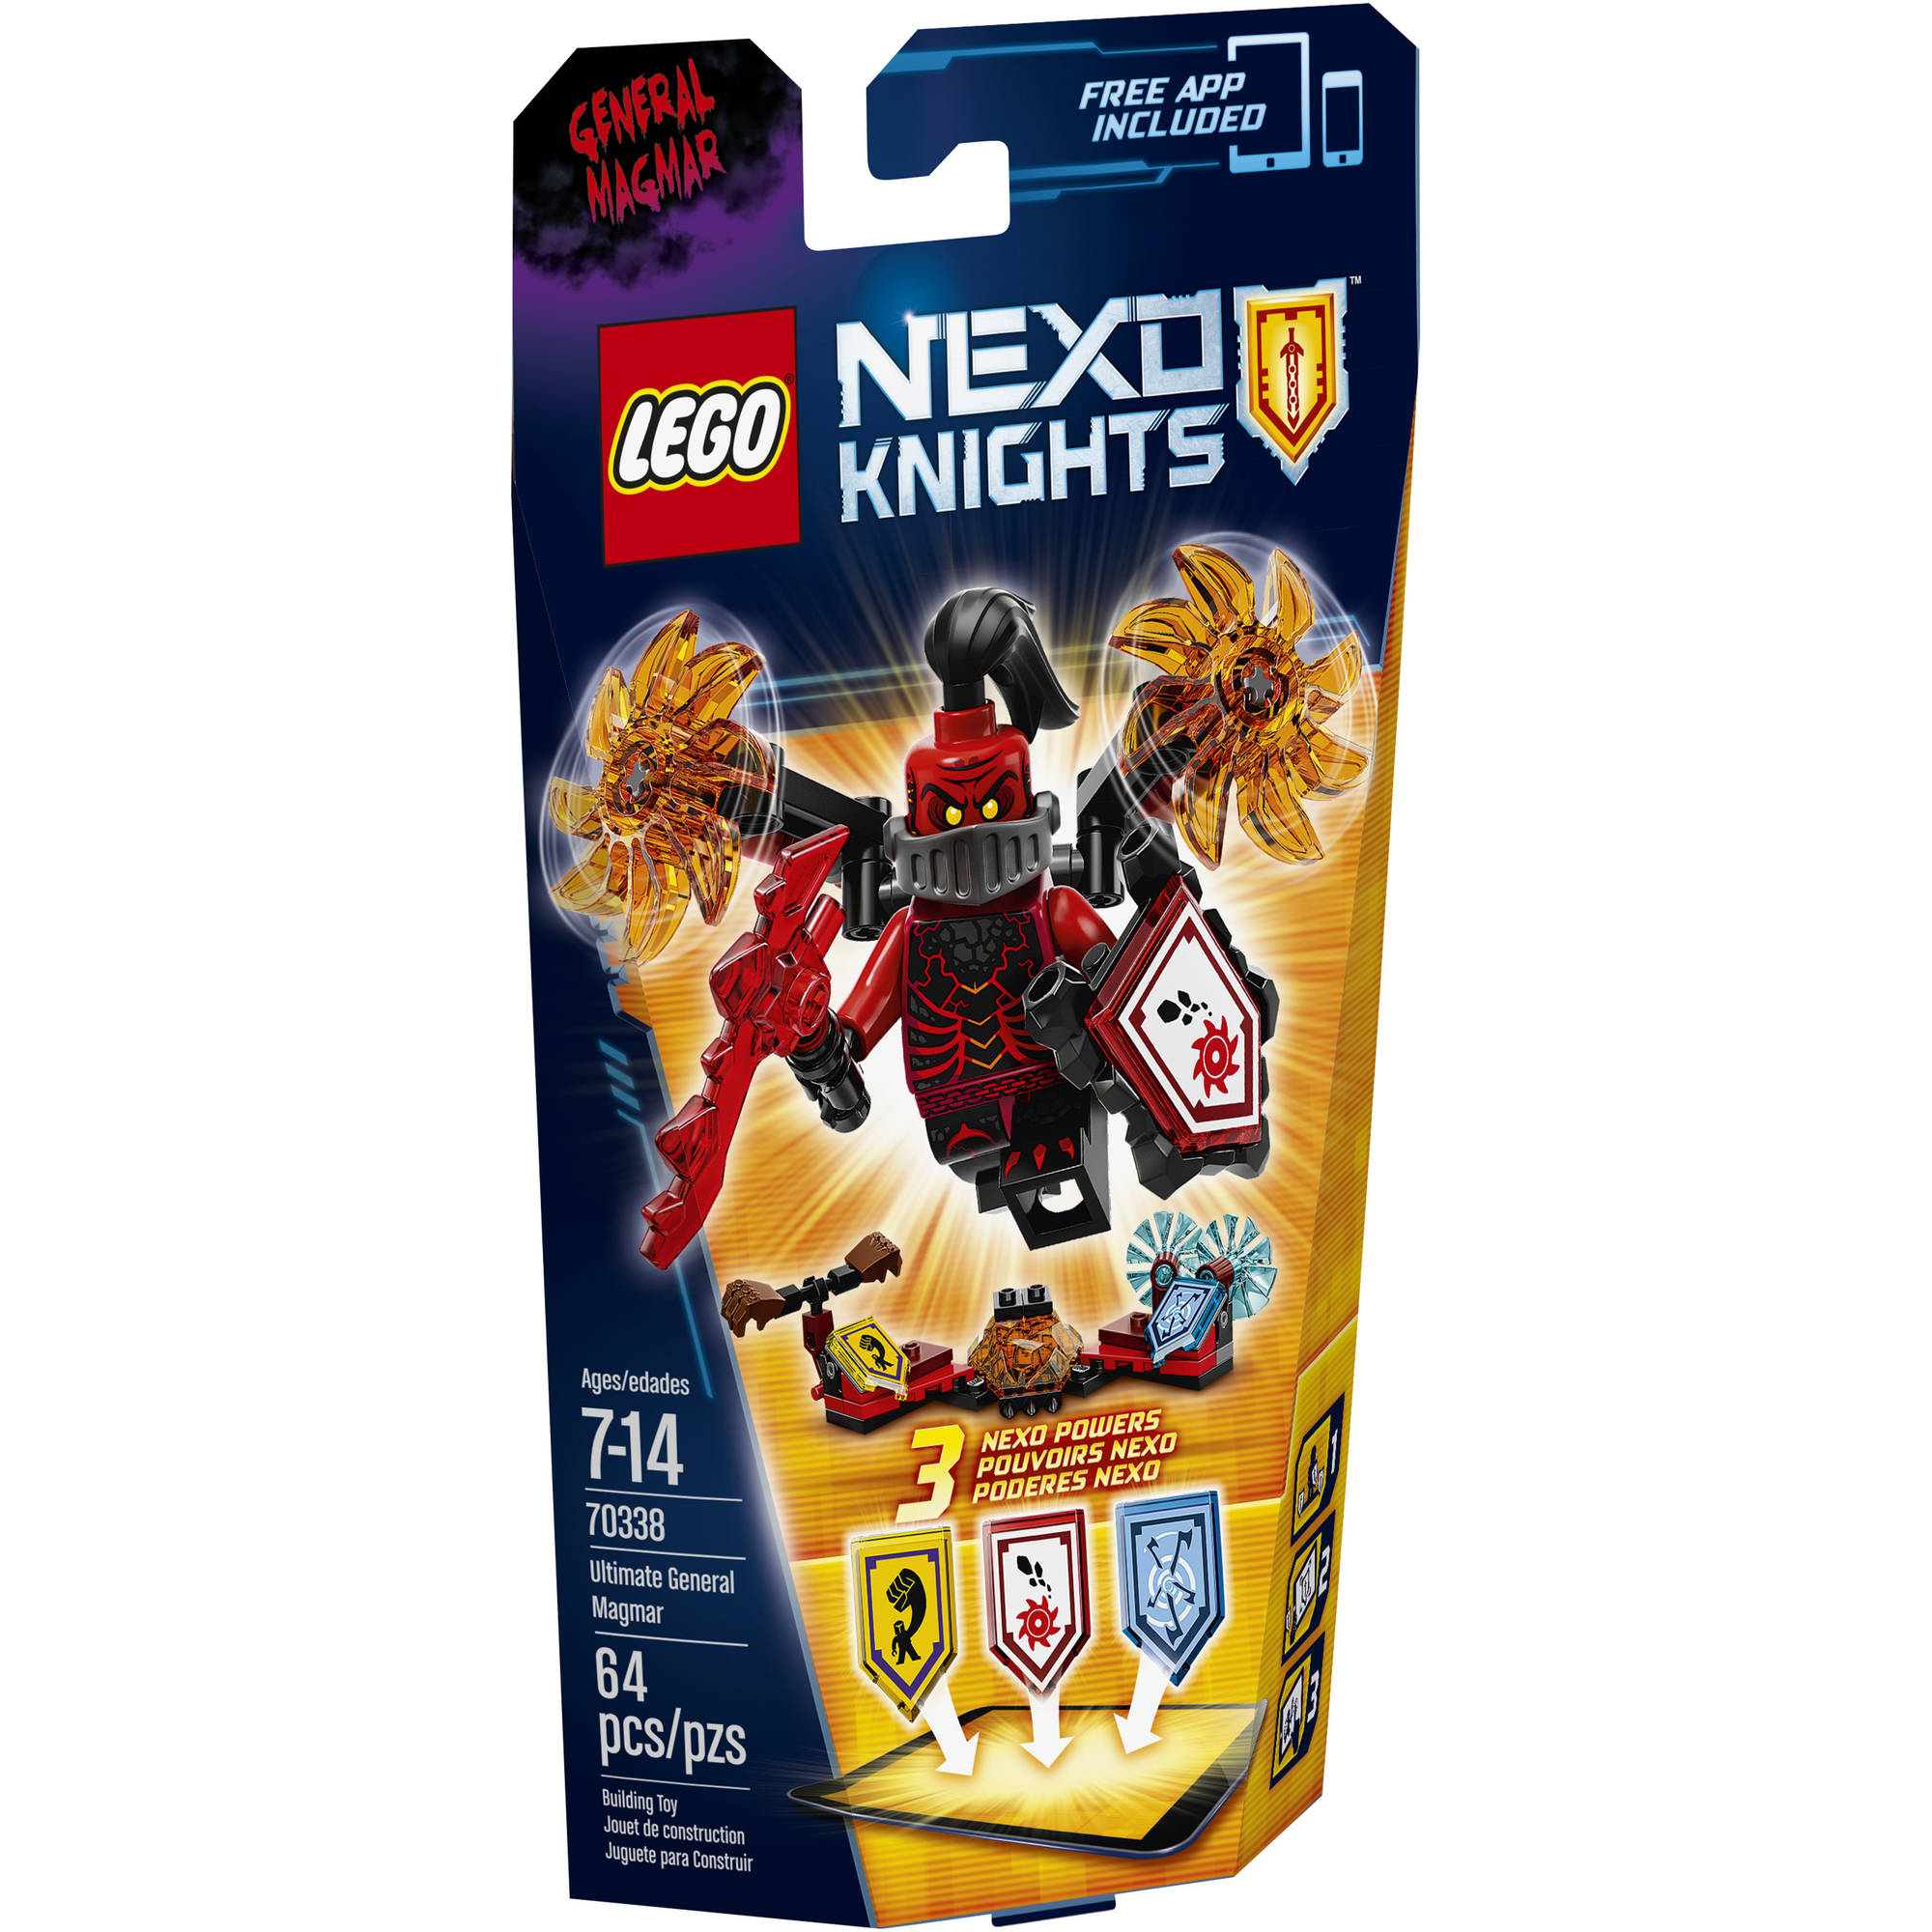 LEGO NEXO KNIGHTS Ultimate General Magmar, 70338